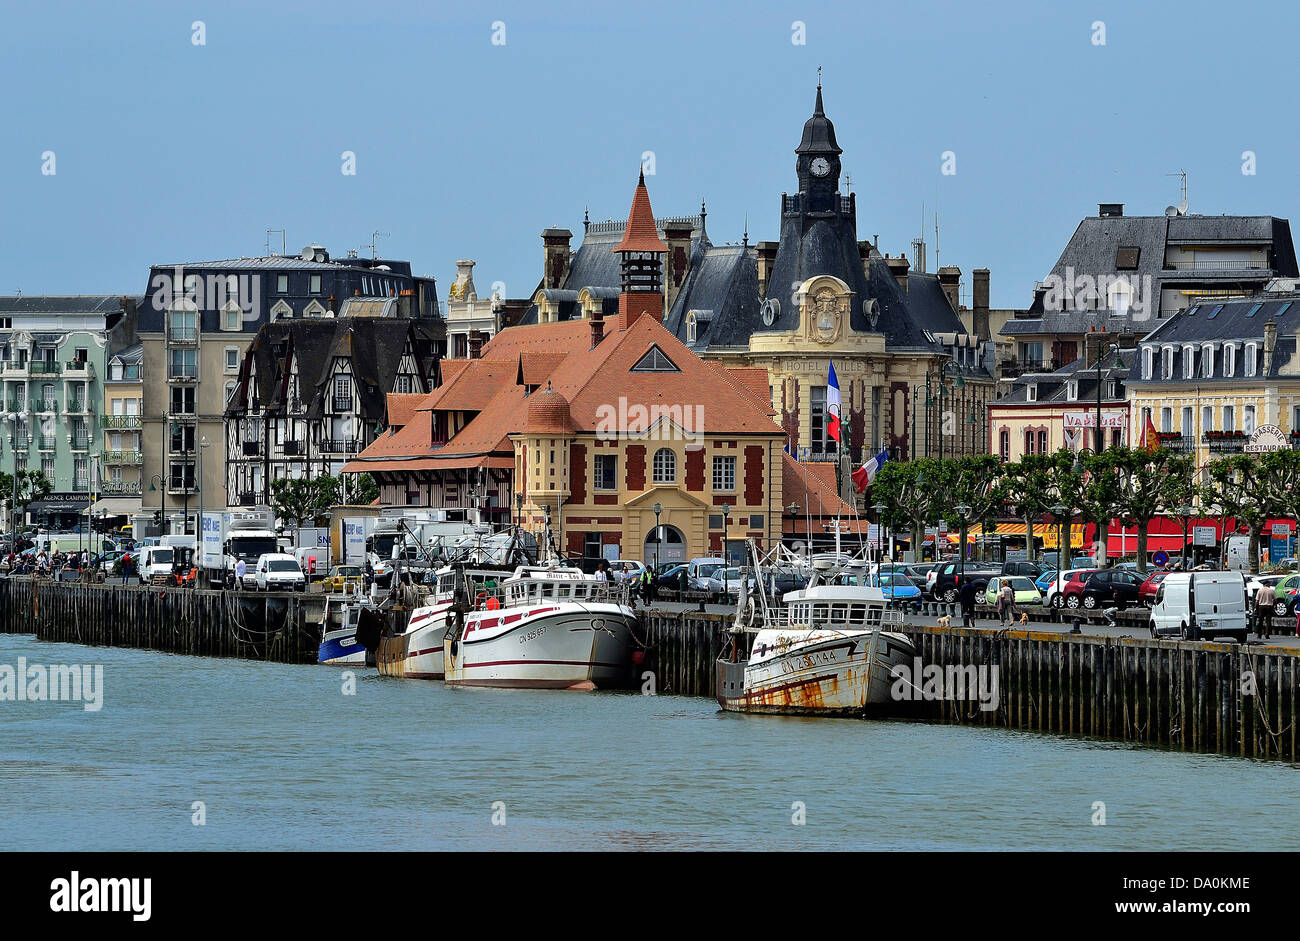 port of trouville sur mer touques river town hall in the background stock photo royalty free. Black Bedroom Furniture Sets. Home Design Ideas